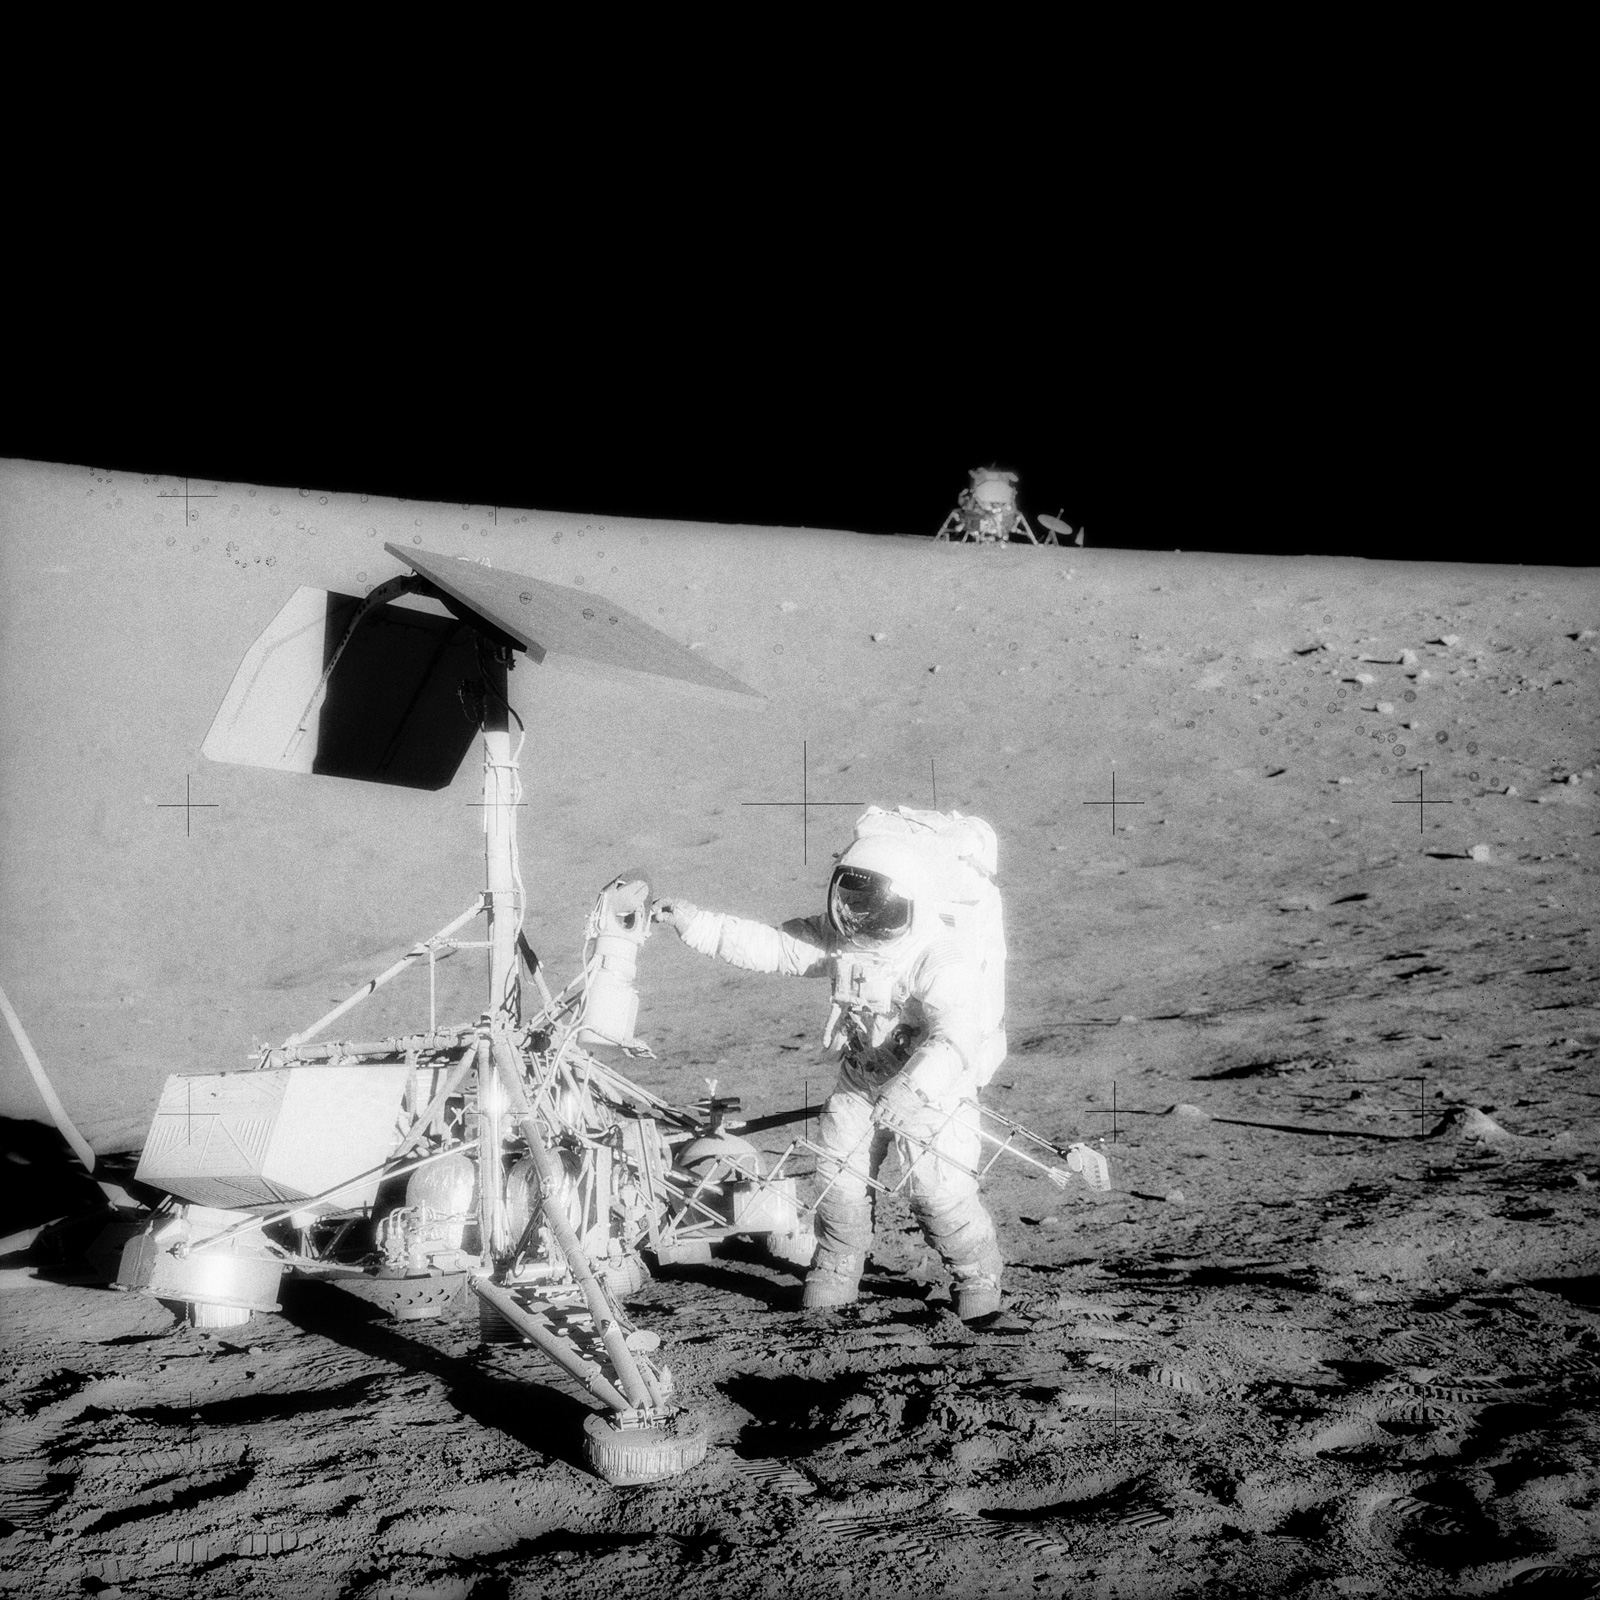 Astronaut standing next to robotic spacecraft on the surface of the Moon.